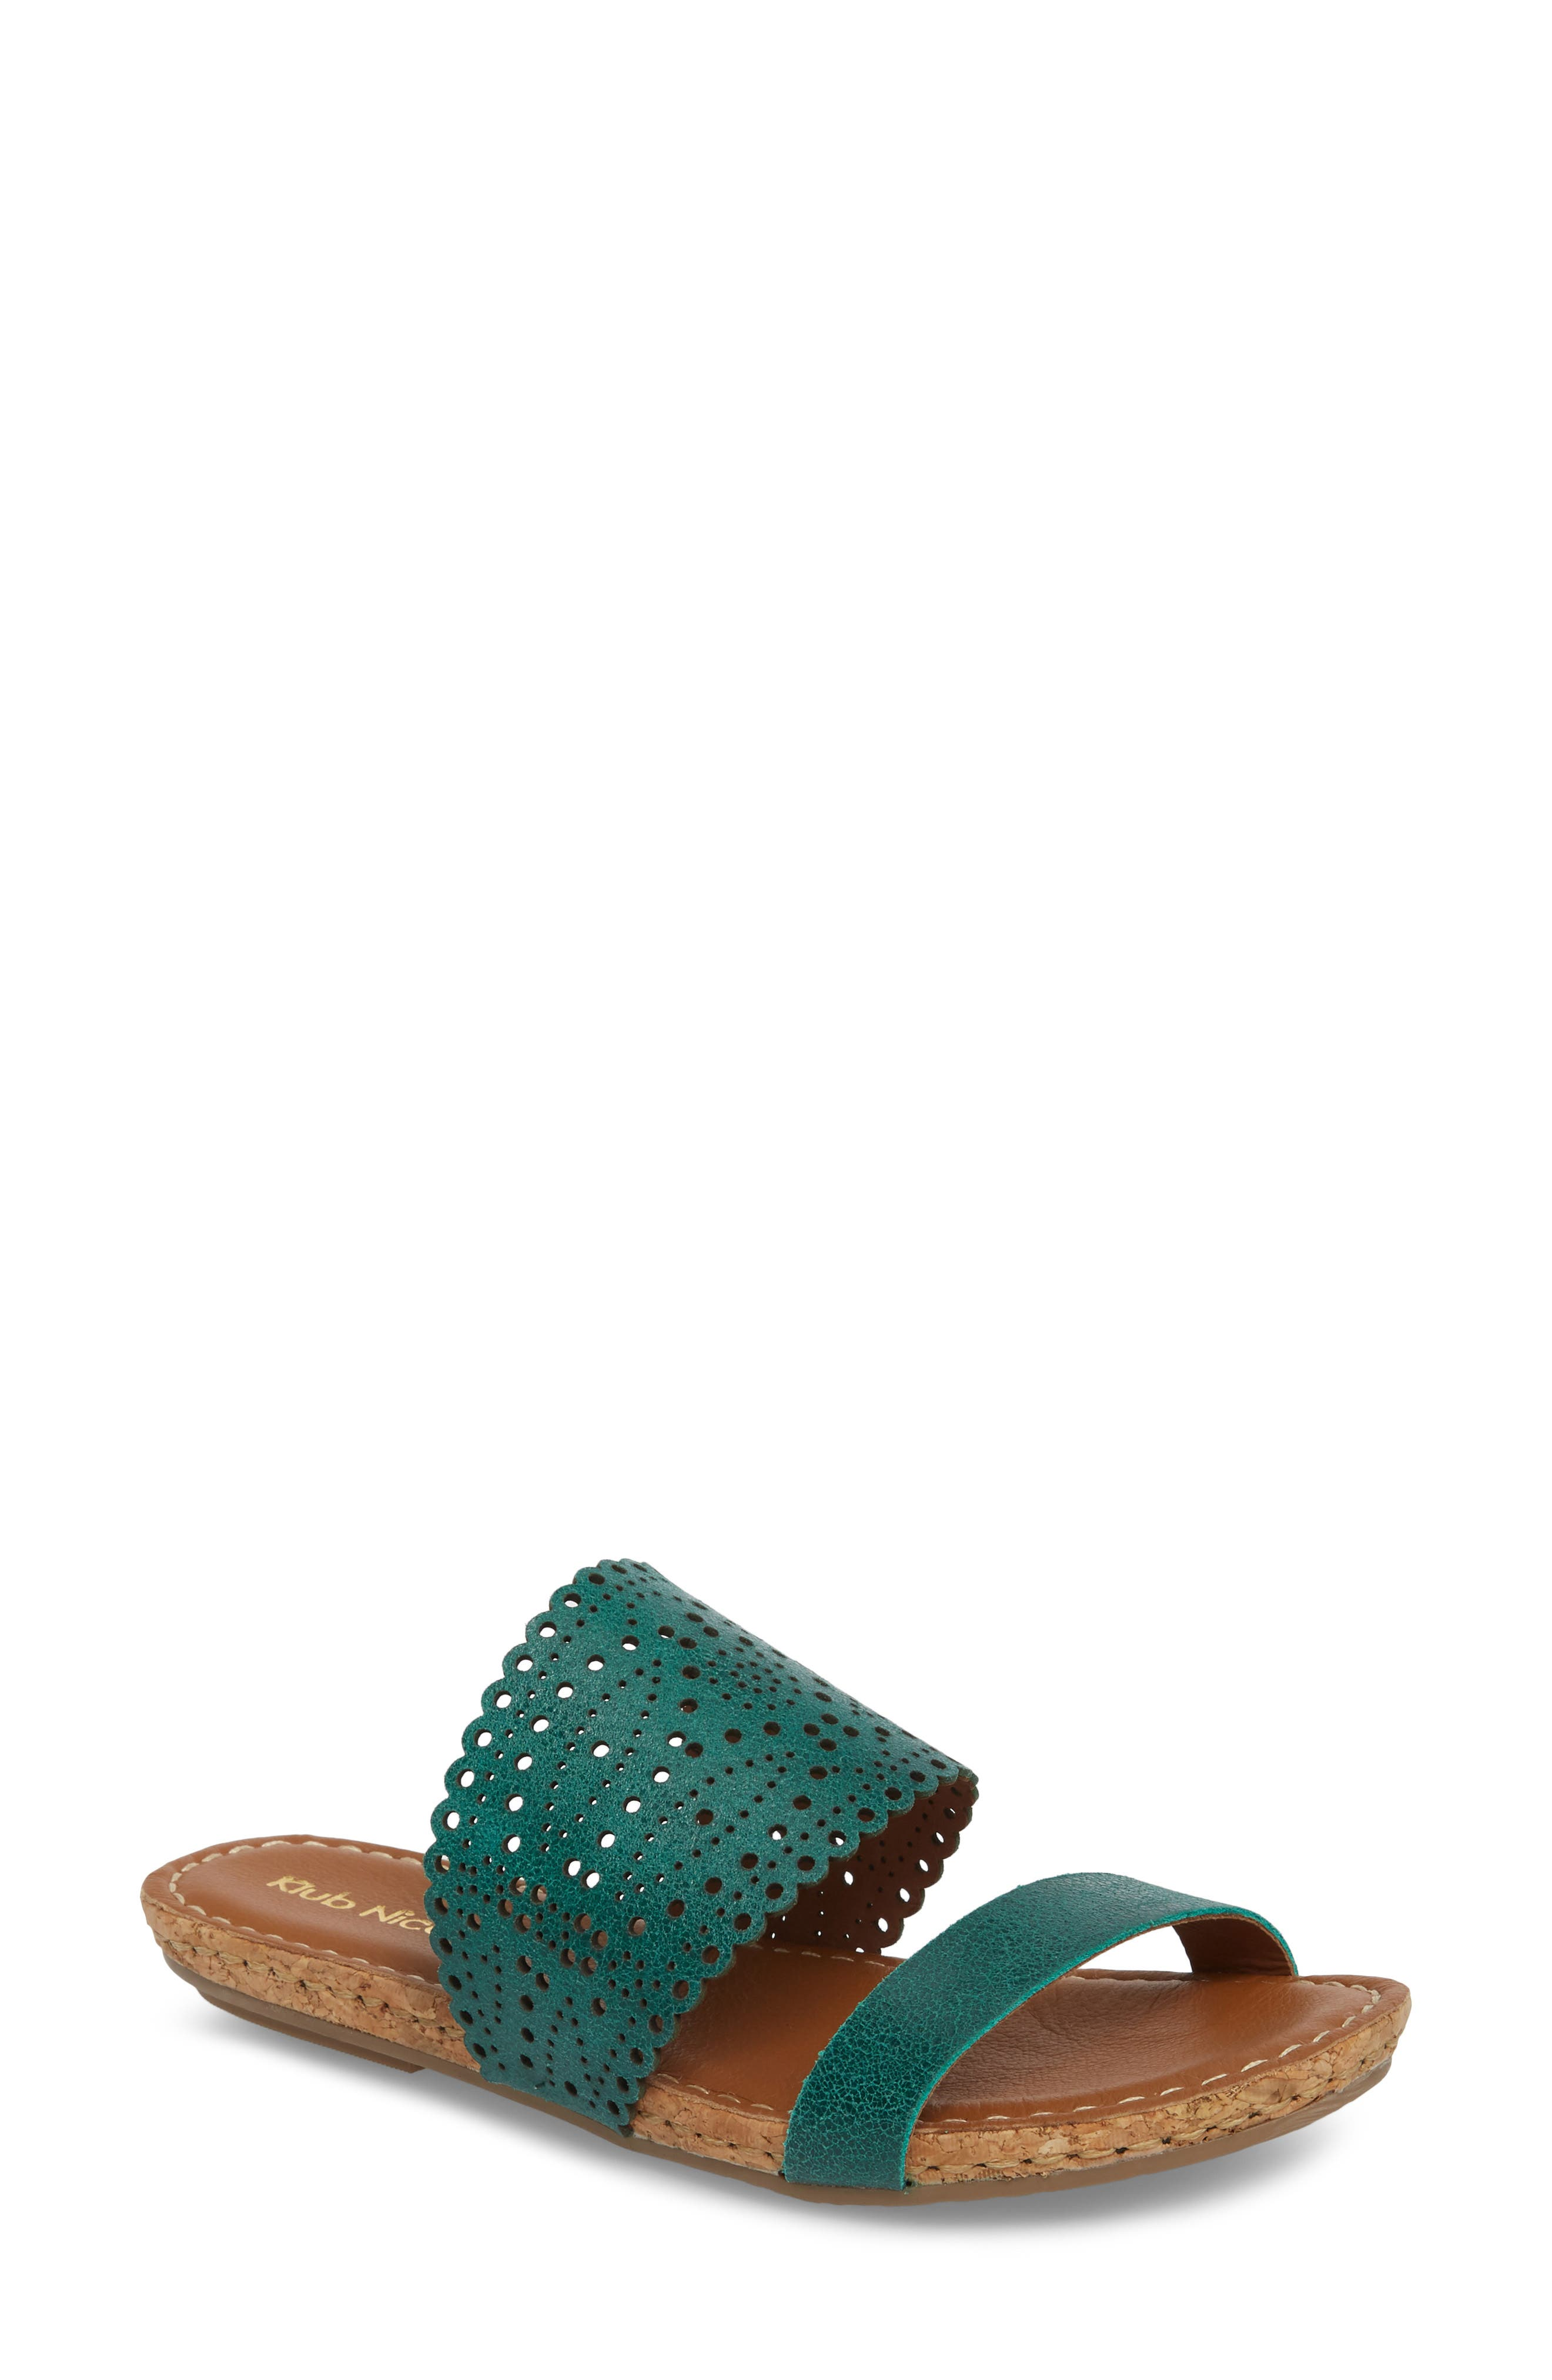 Ginette Perforated Slide Sandal,                         Main,                         color, Ivy Leather